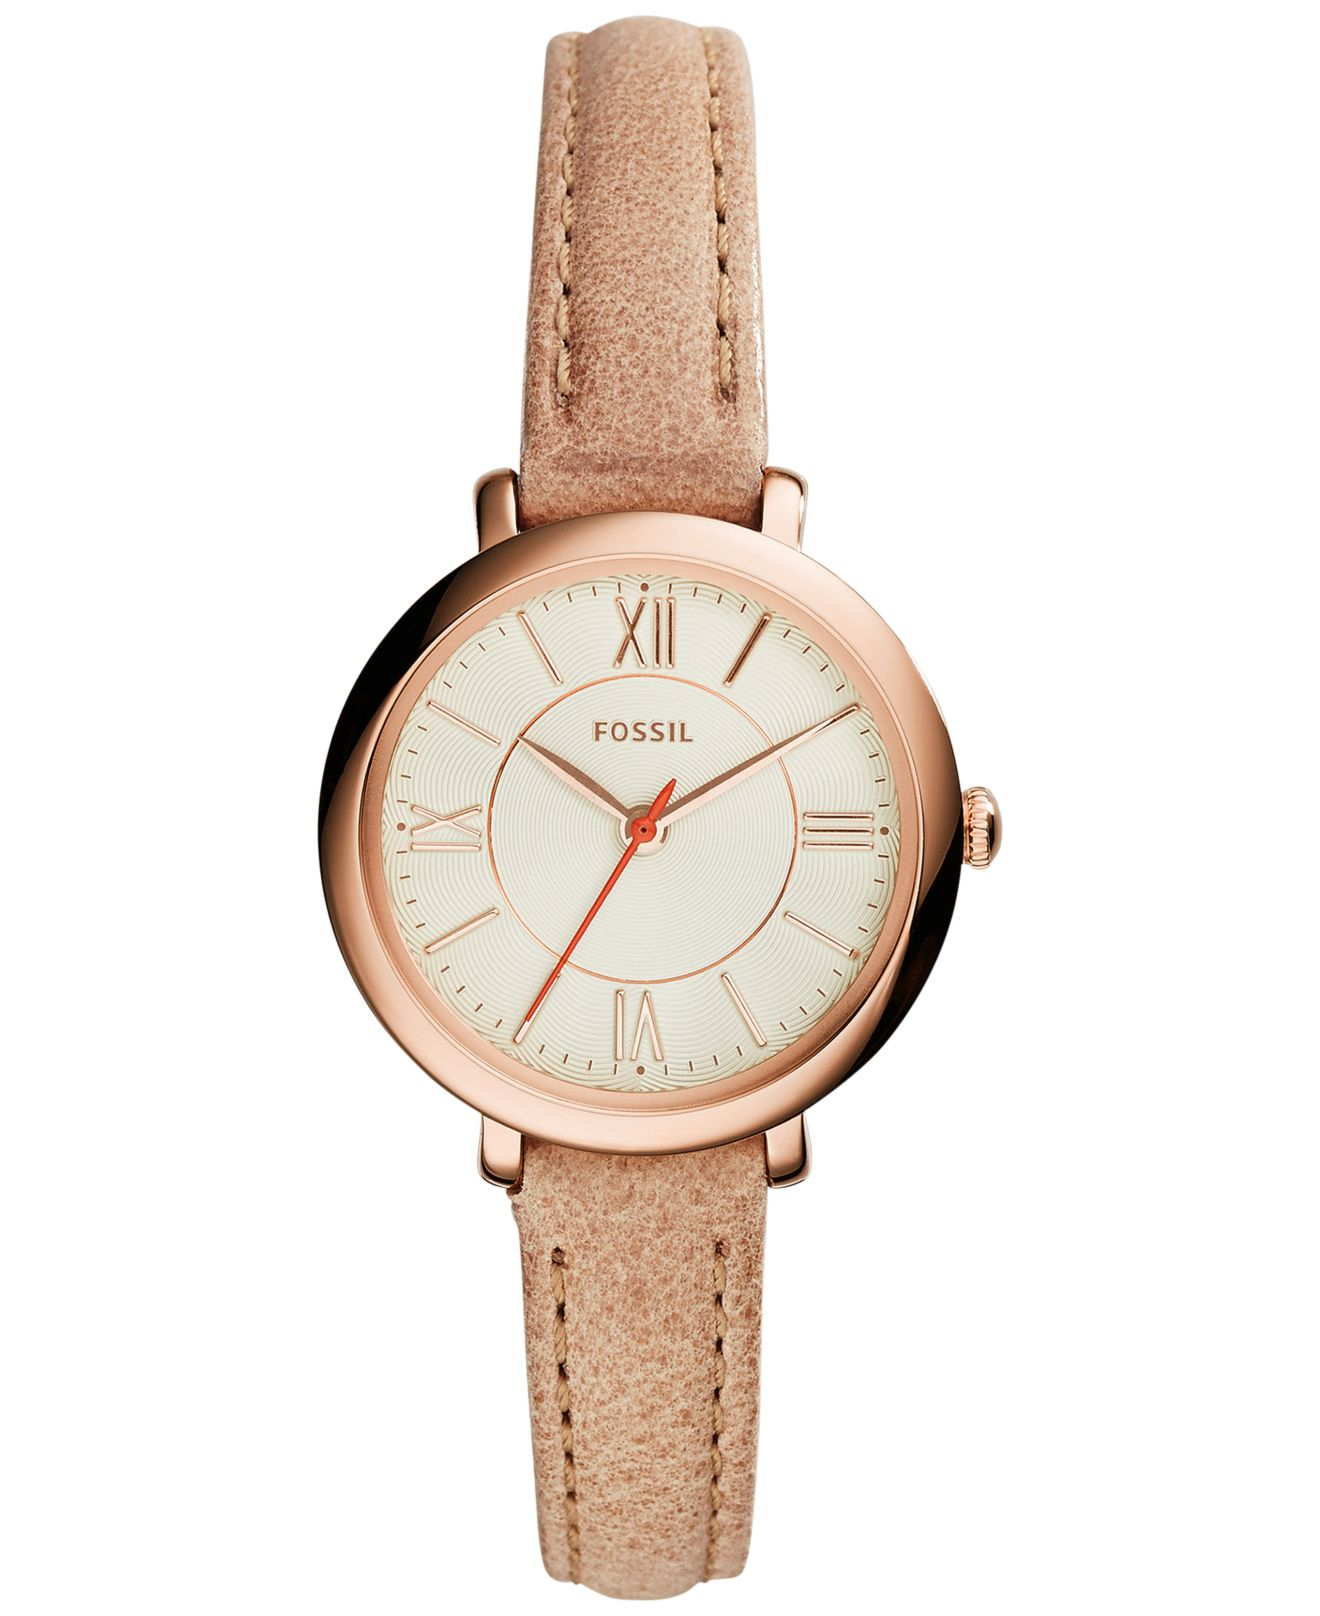 fossil women 39 s jacqueline brown tan leather strap watch. Black Bedroom Furniture Sets. Home Design Ideas